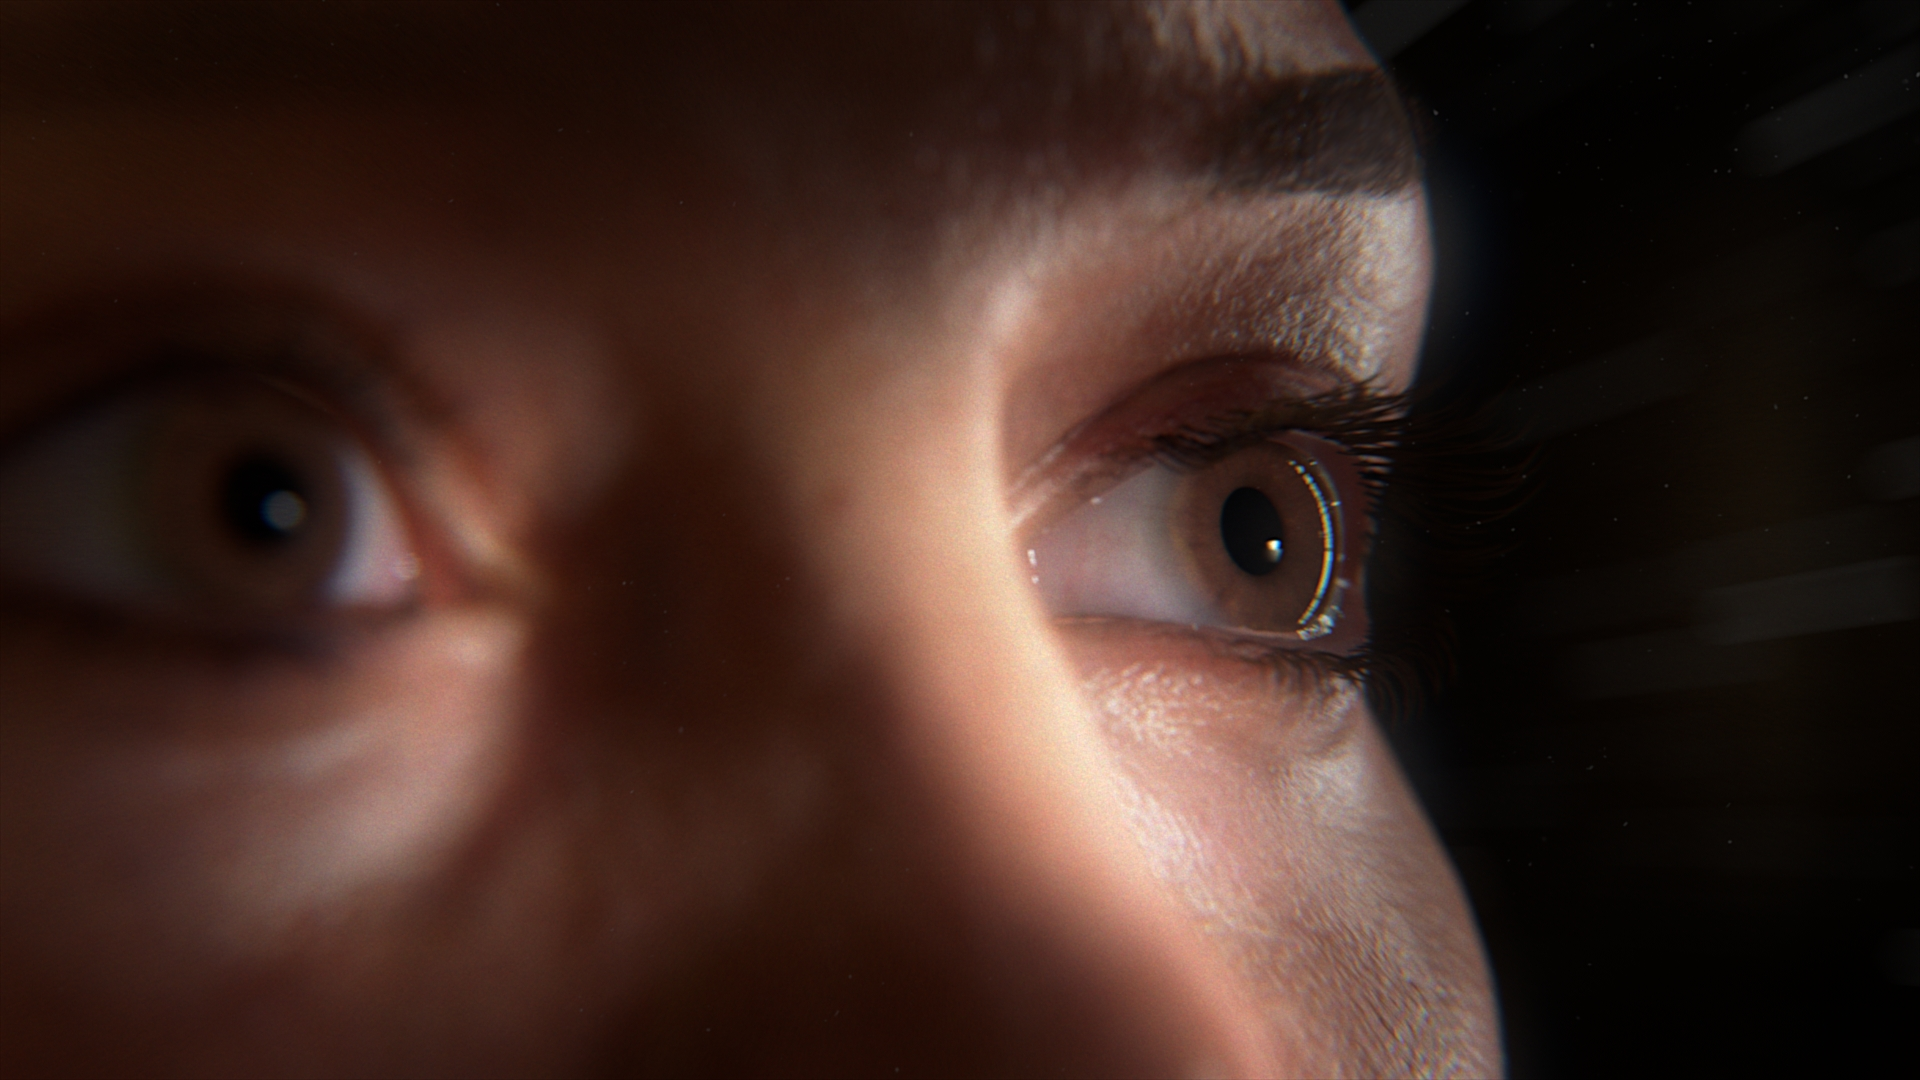 eyes_open_styleframe.png